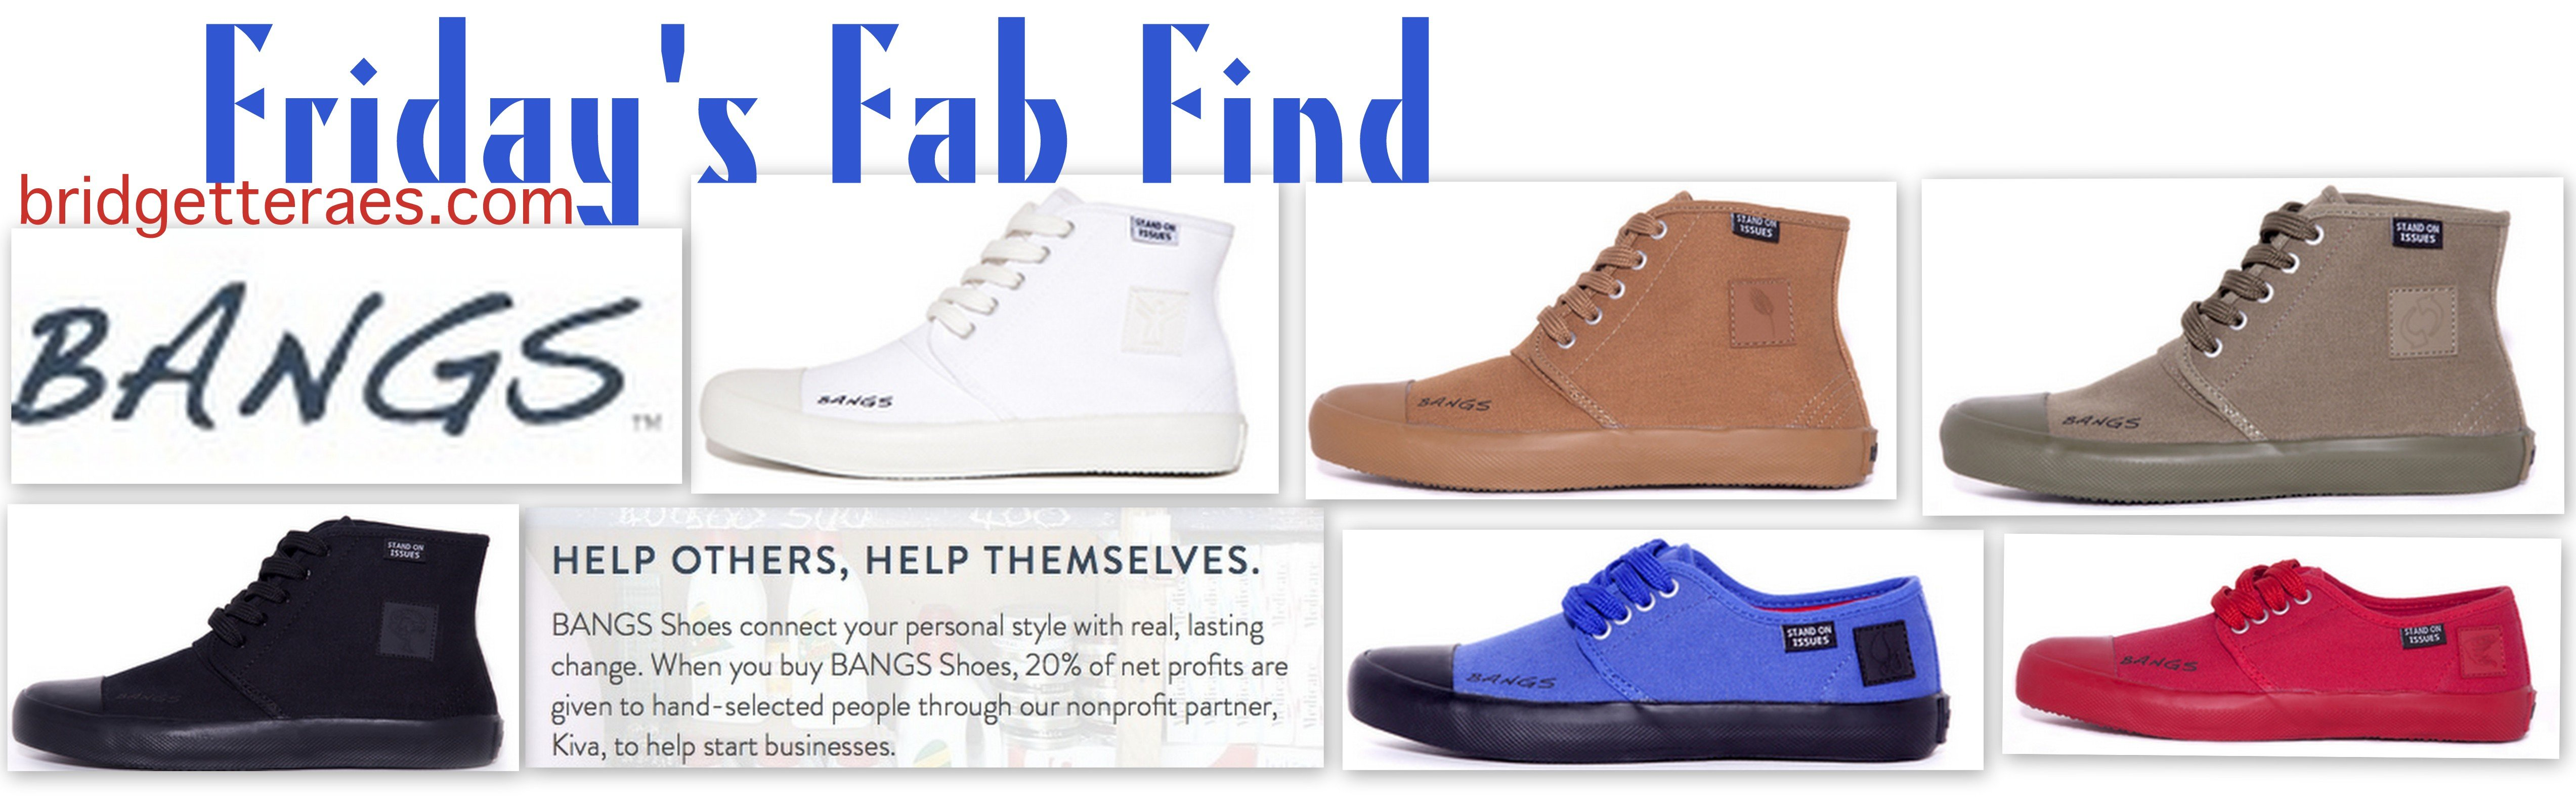 Friday's Fab Find: Bangs Shoes